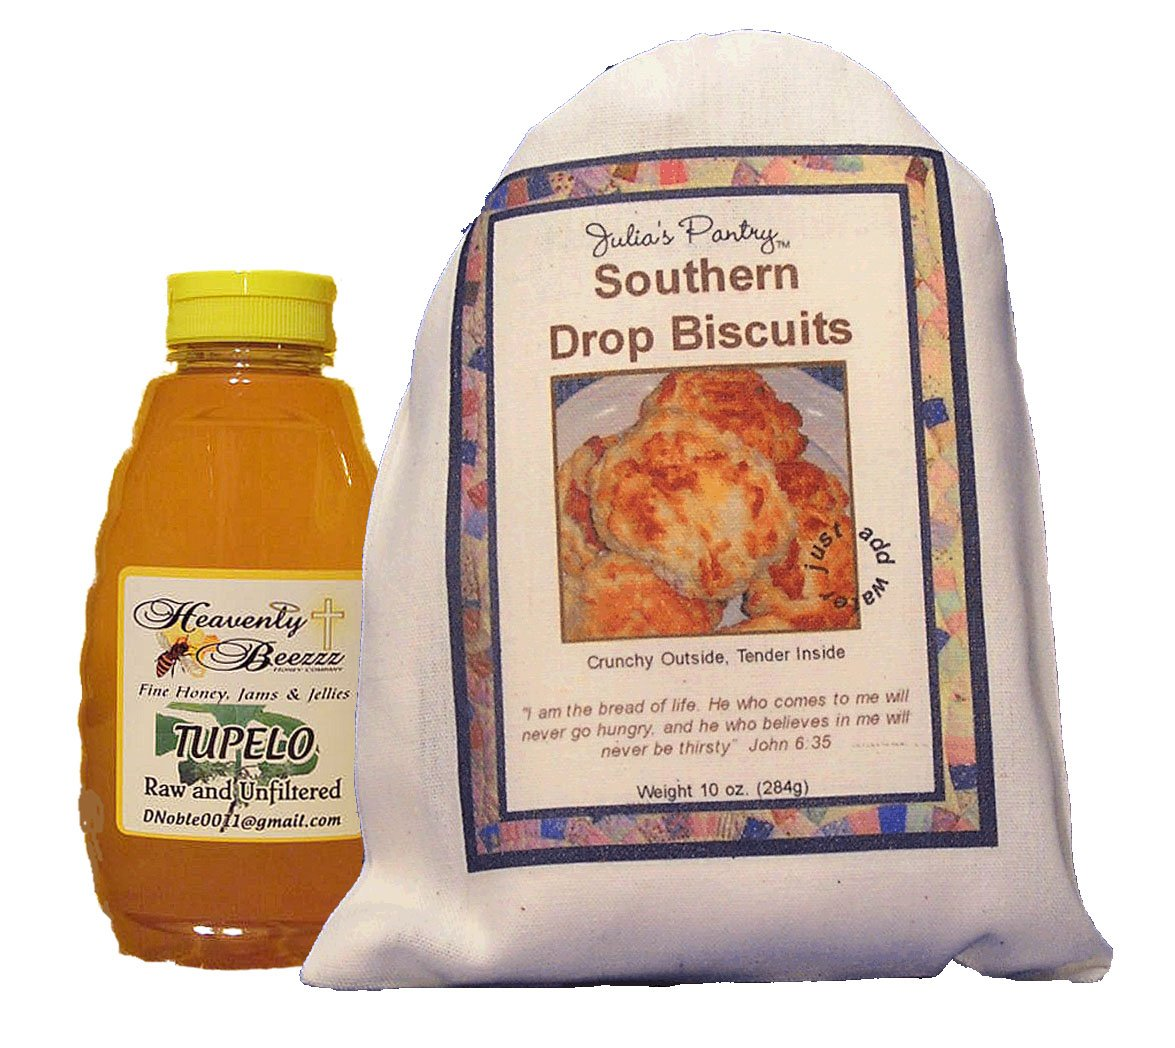 Southern Biscuit Mix and Tupelo Honey